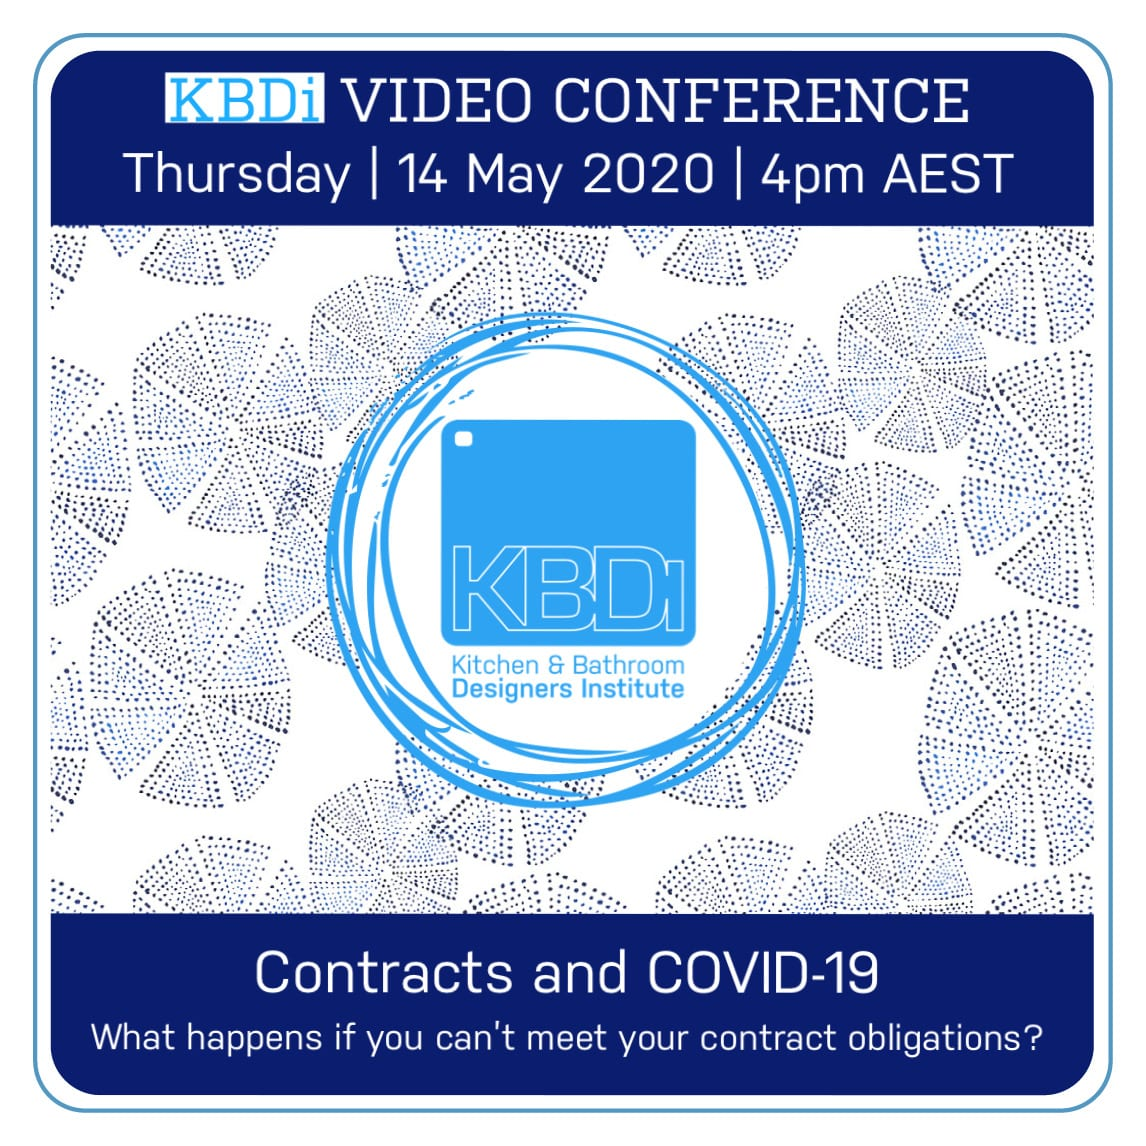 Contracts and Covid